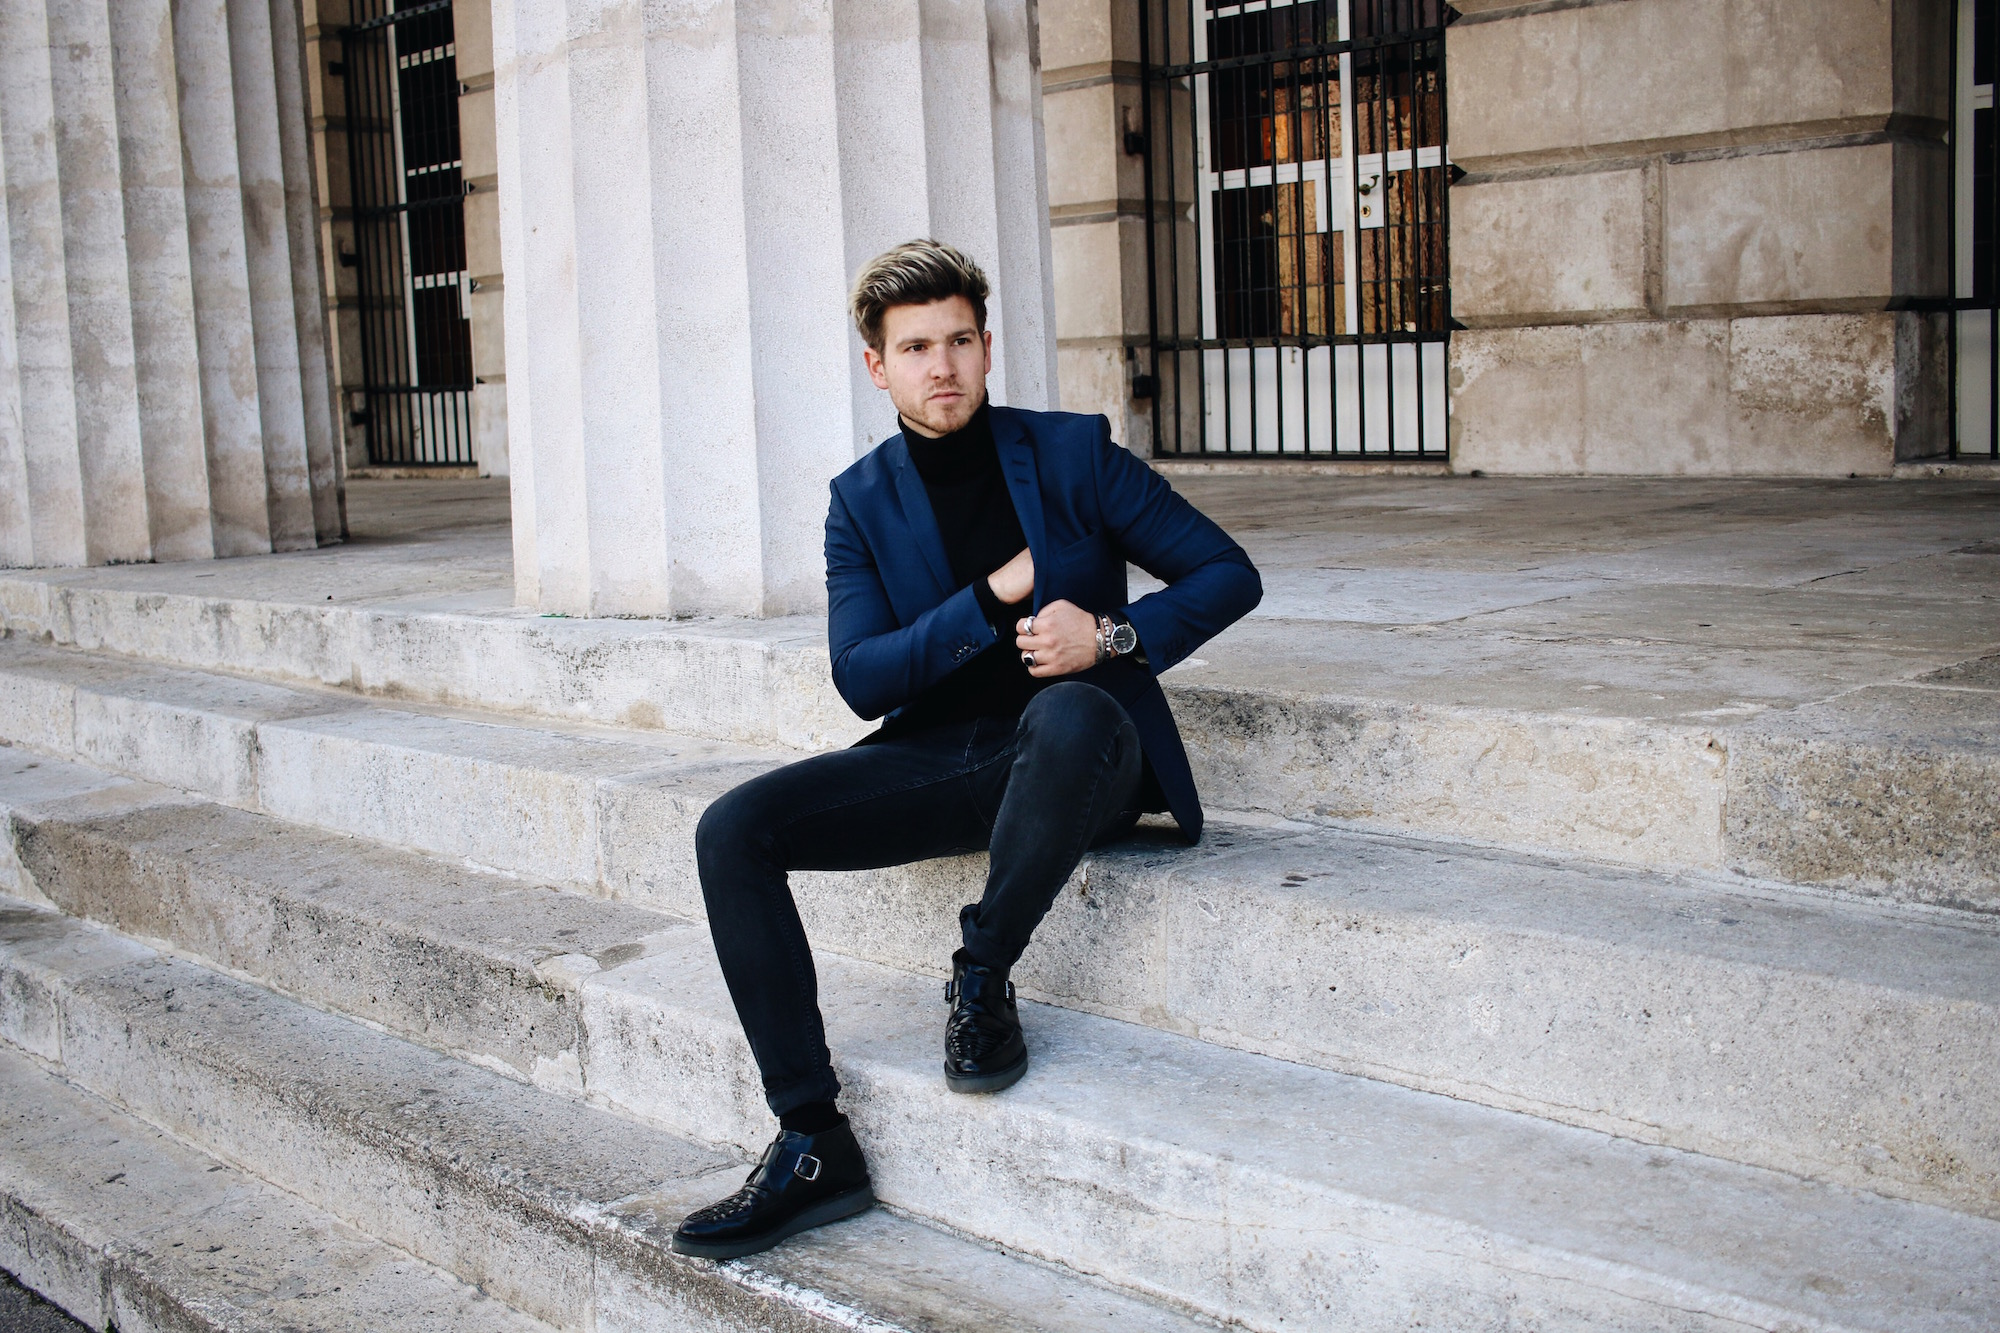 Tiger-Of-Sweden-Suit-Mix-Match_Three-ways-to-wear-a-suit_Meanwhile-in-Awesometown_Austrian-Mens-Fashion-and-Lifestyle-Blogger13